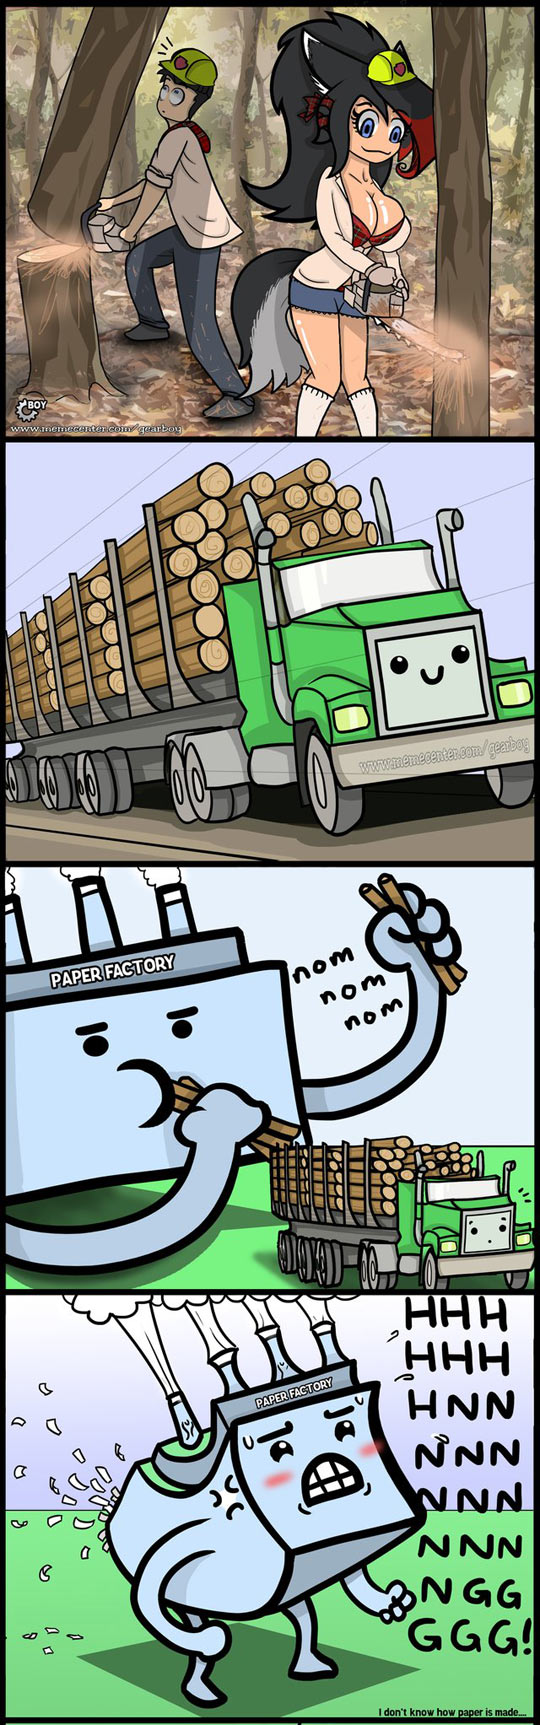 funny-society-trees-factory-protestant-comic